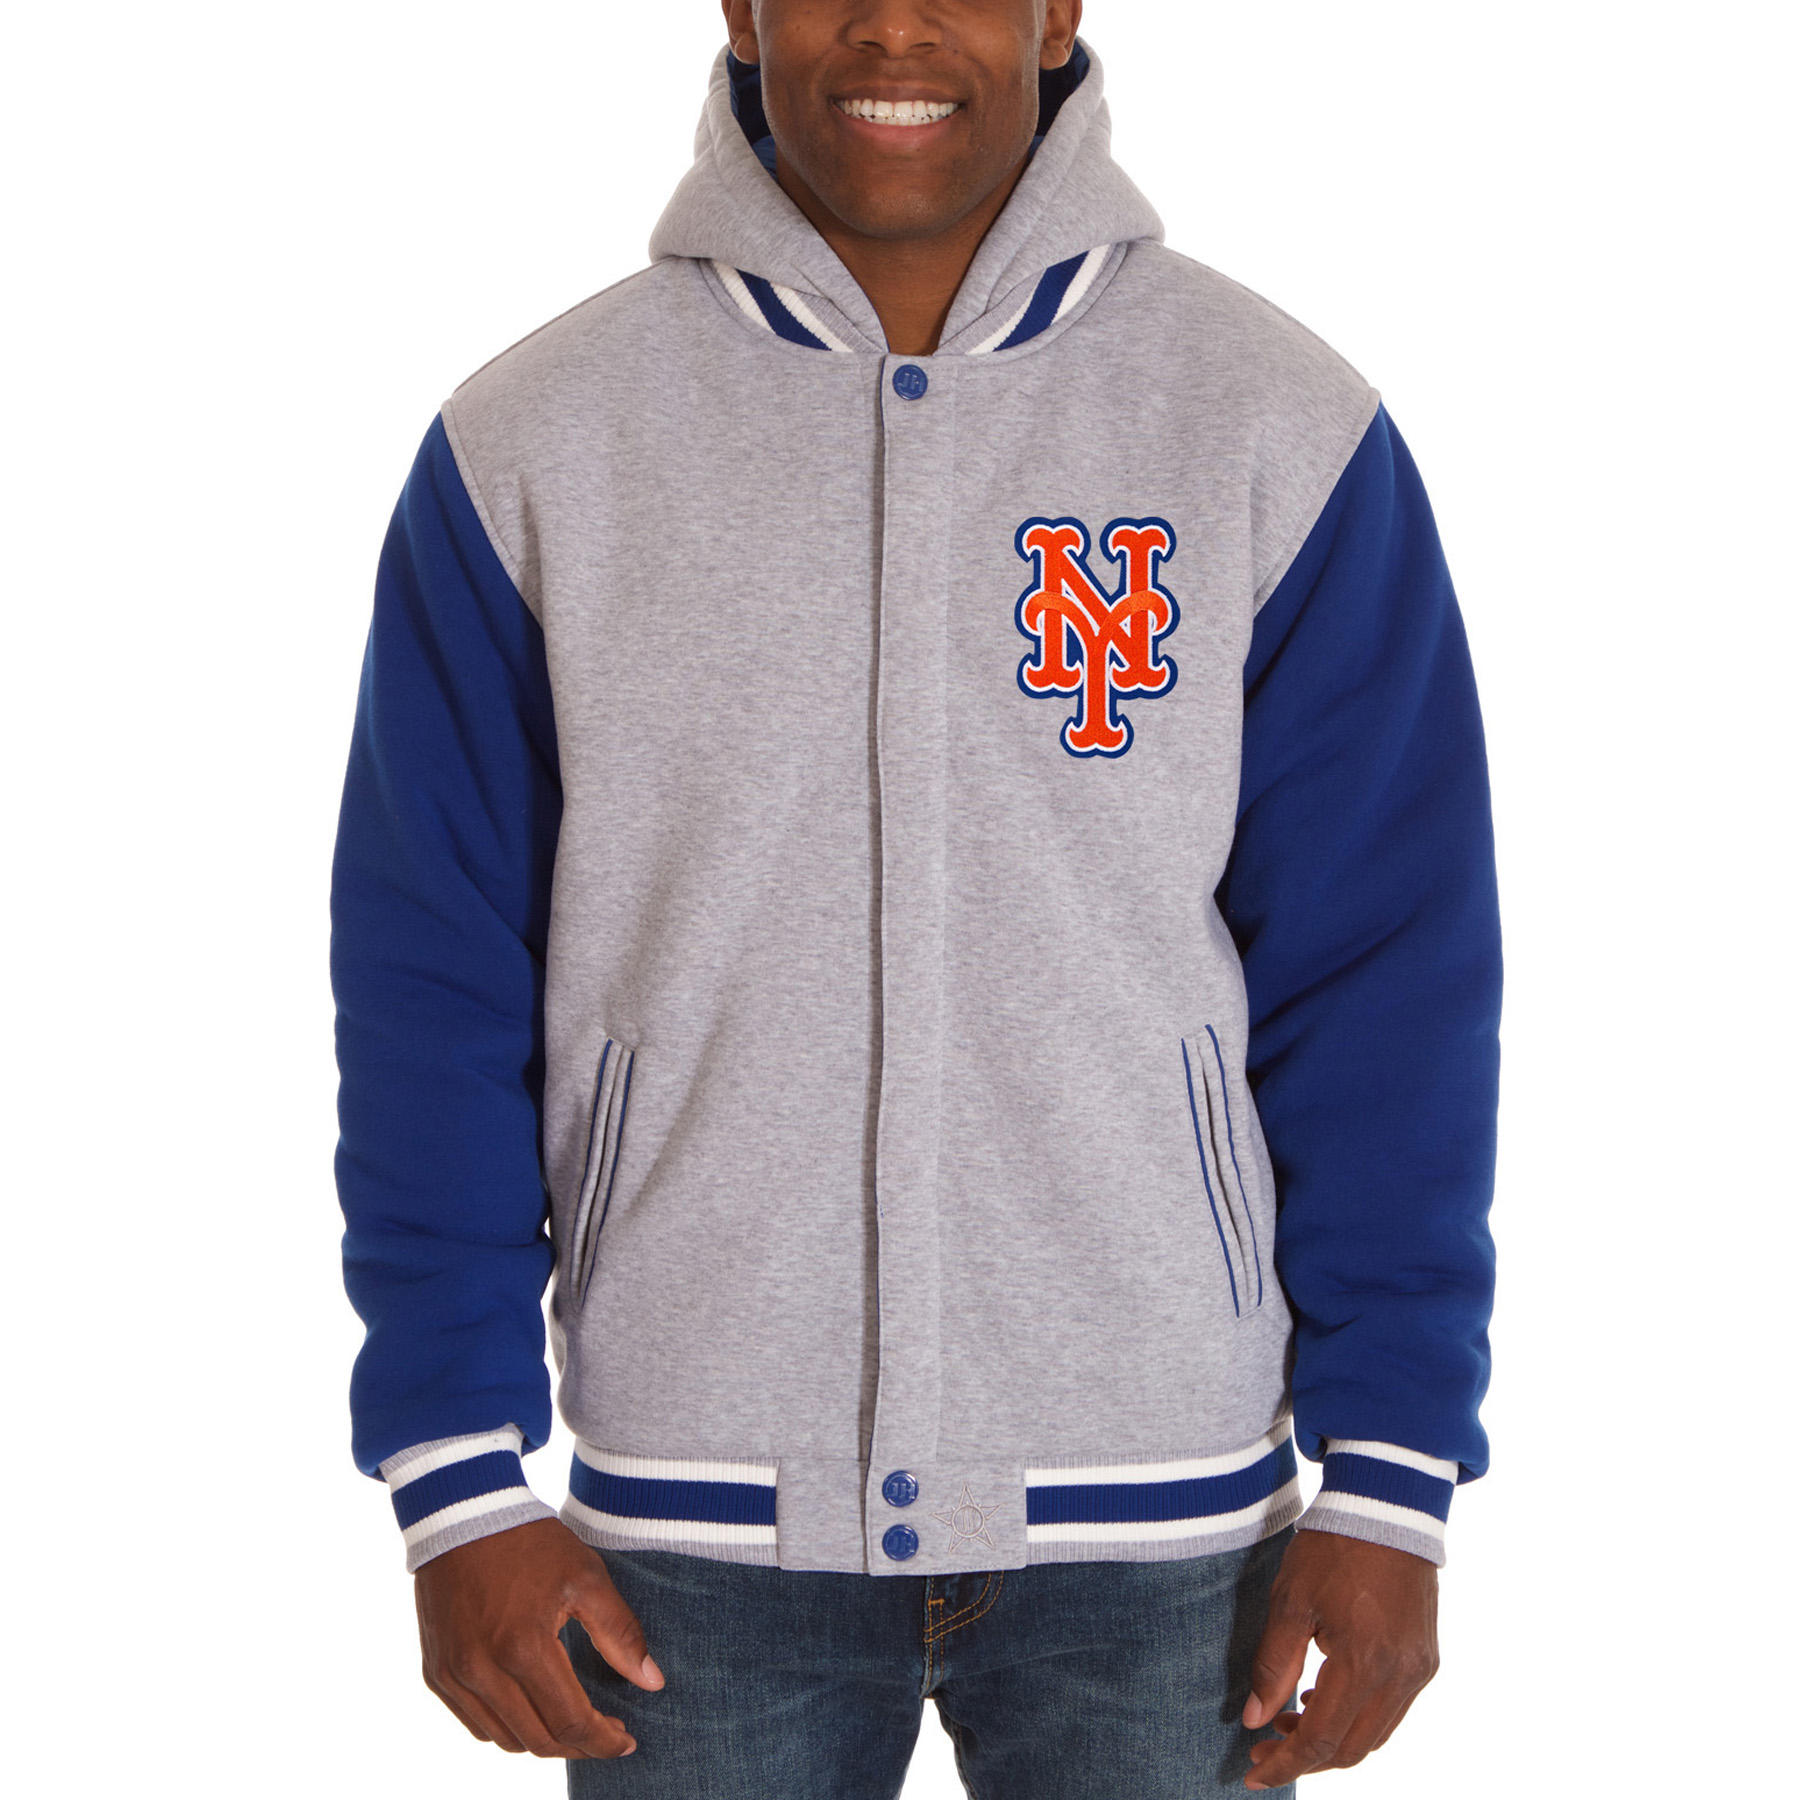 New York Mets JH Design Reversible Fleece Full Snap Hoodie - Gray